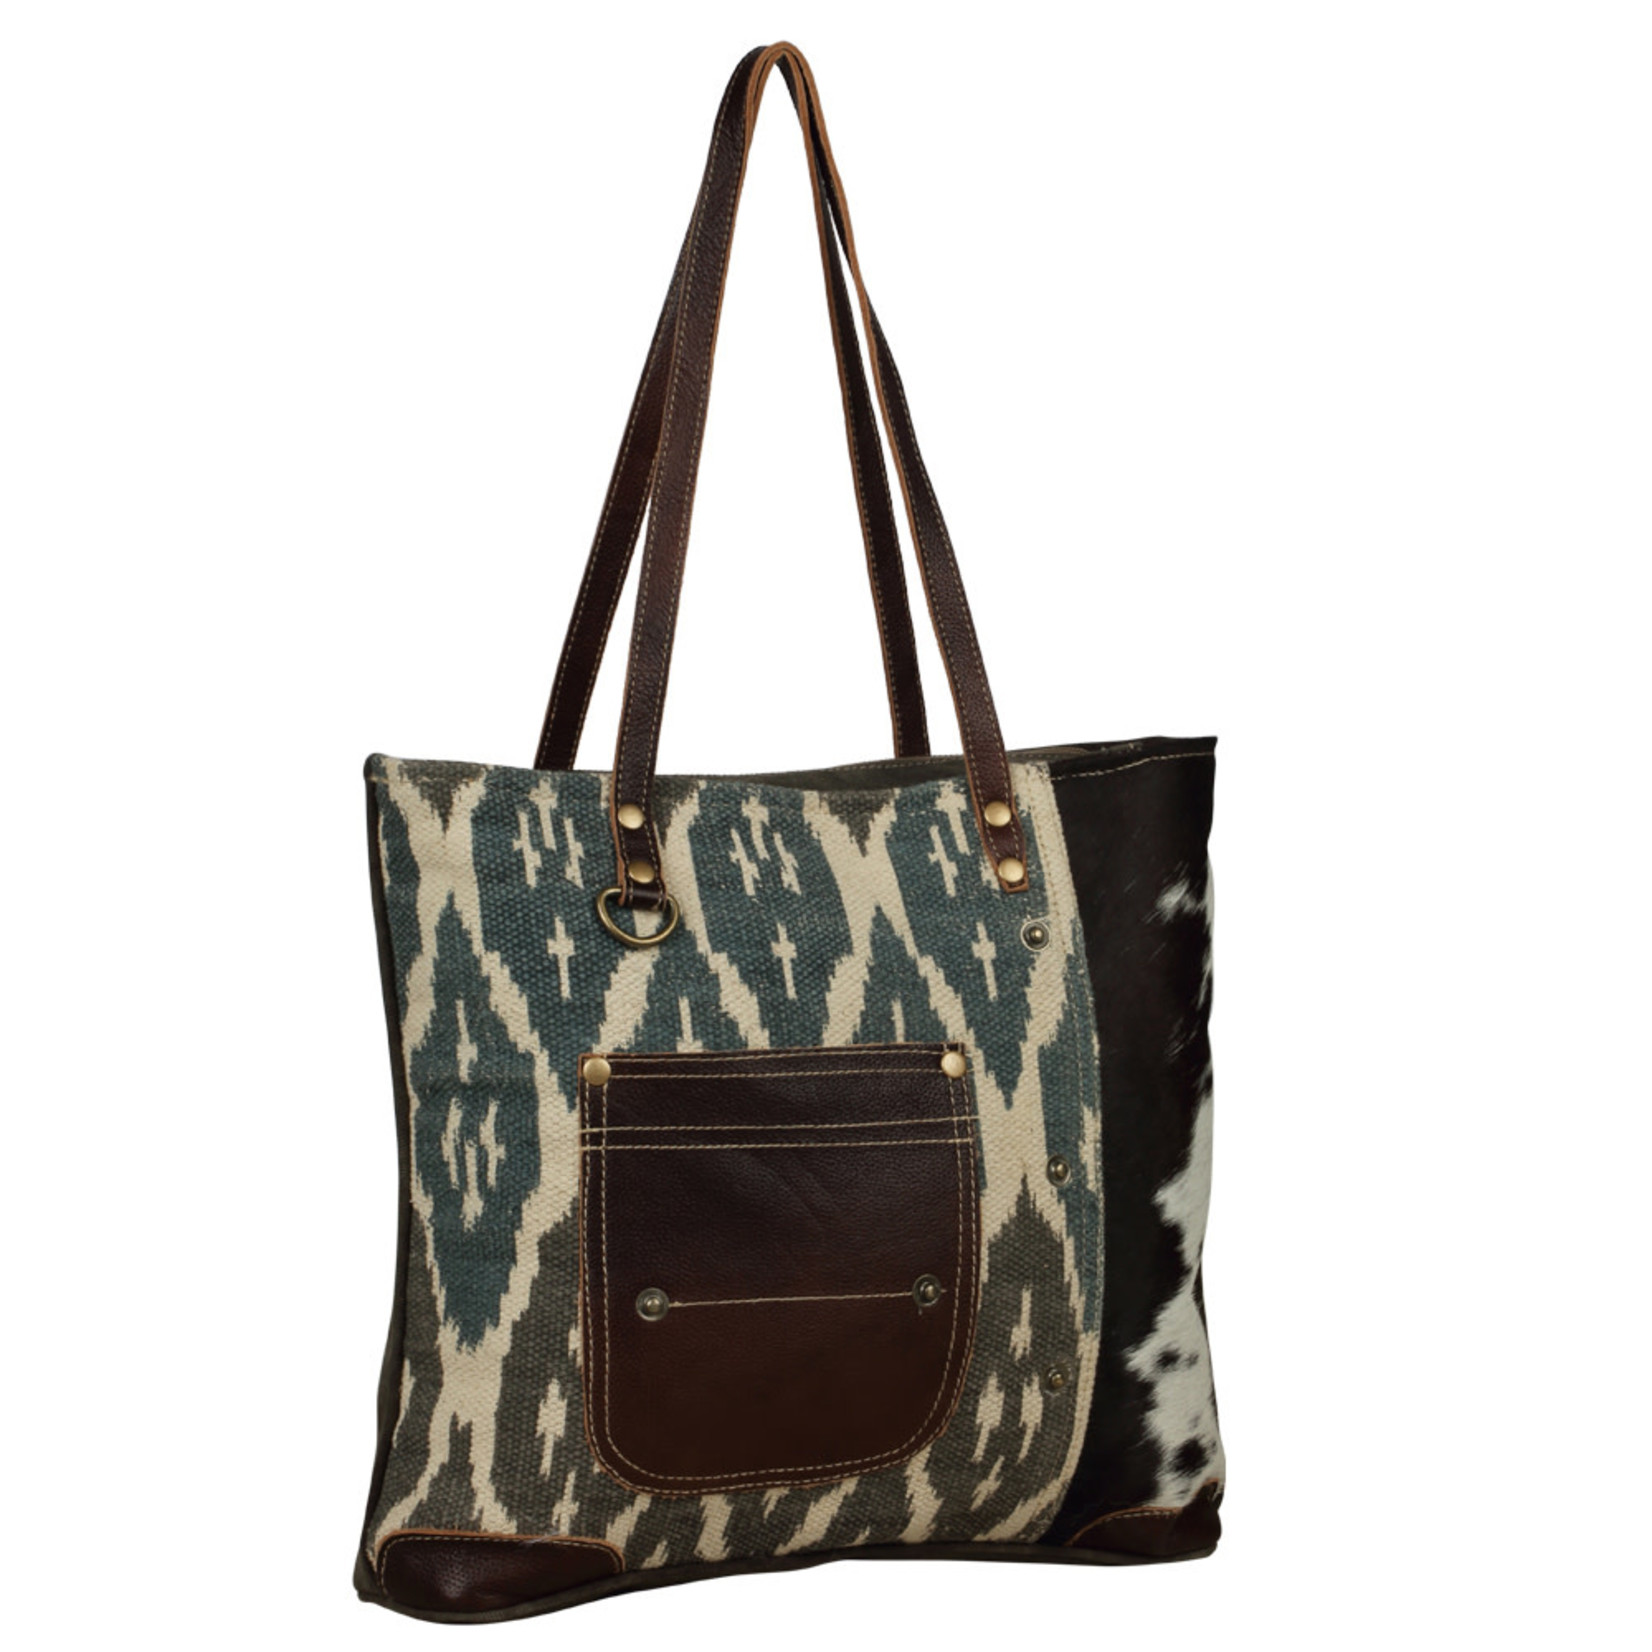 Myra Bags S-2063 Synthesis Tote Bag